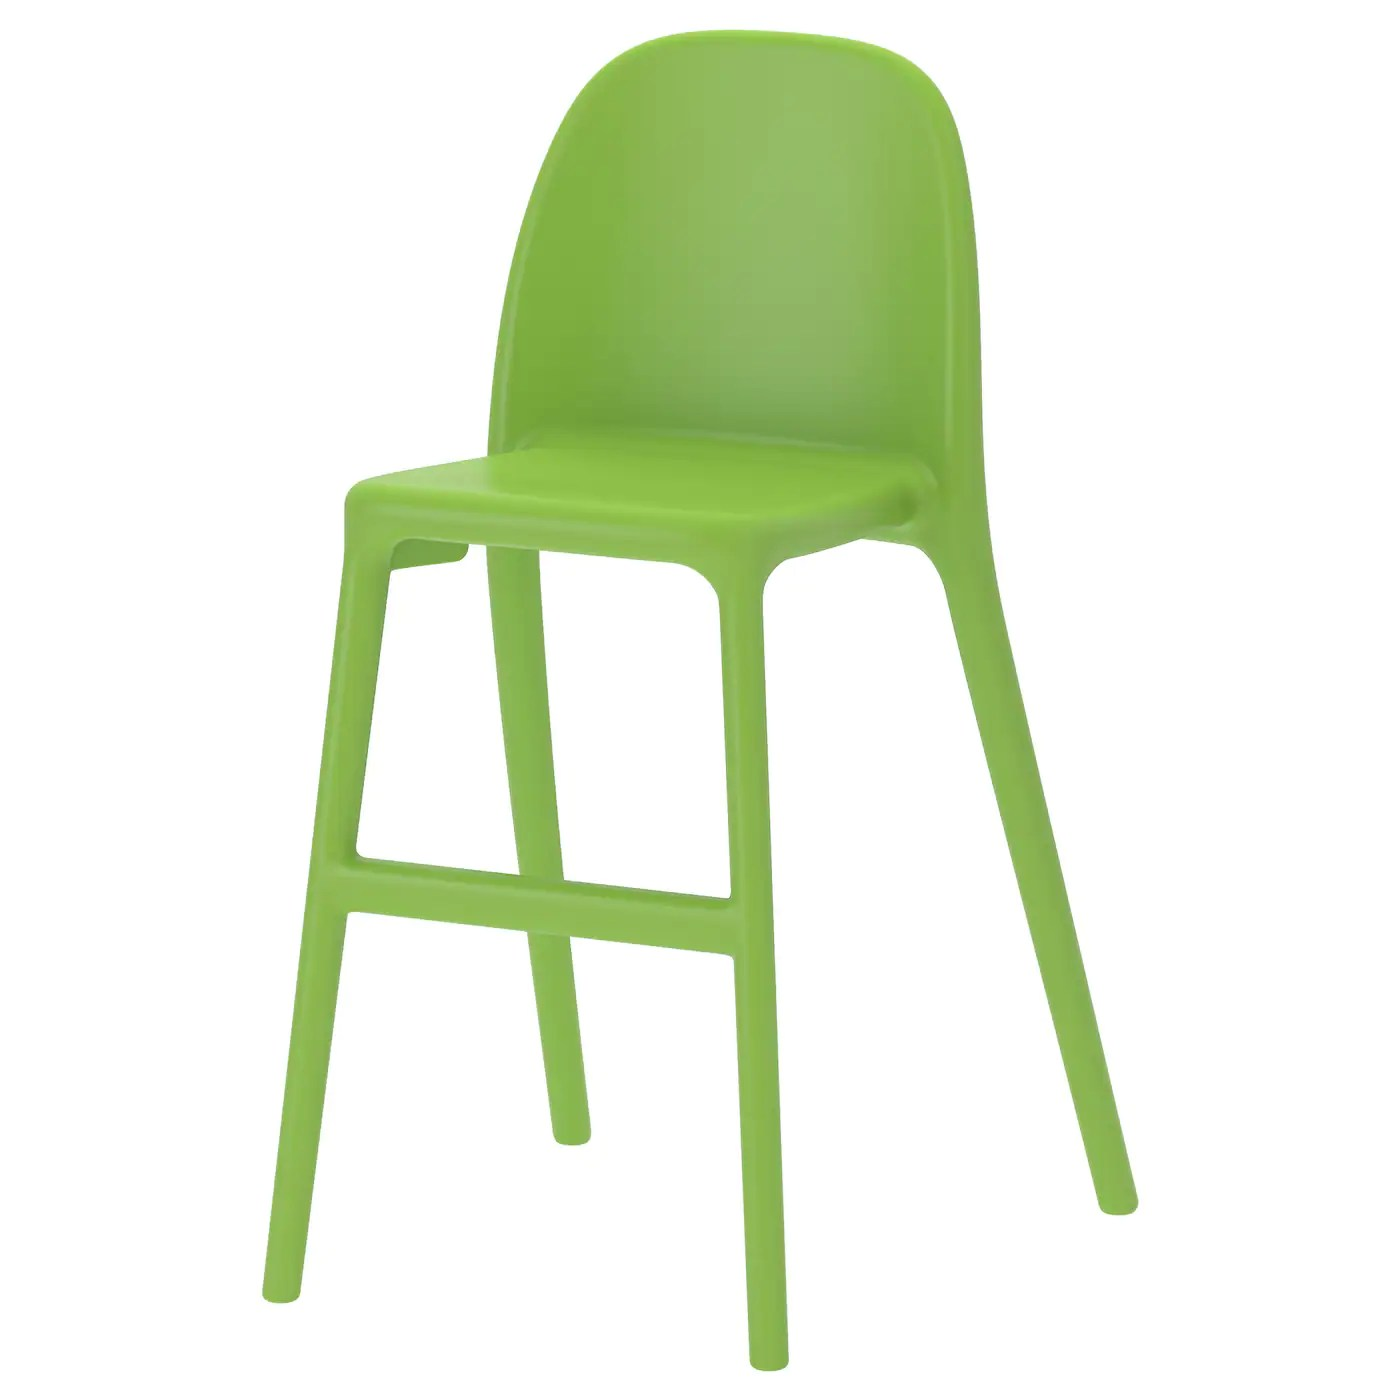 eating chair for toddlers wooden desk children s high chairs junior ikea urban gives the right seat height child at dining table